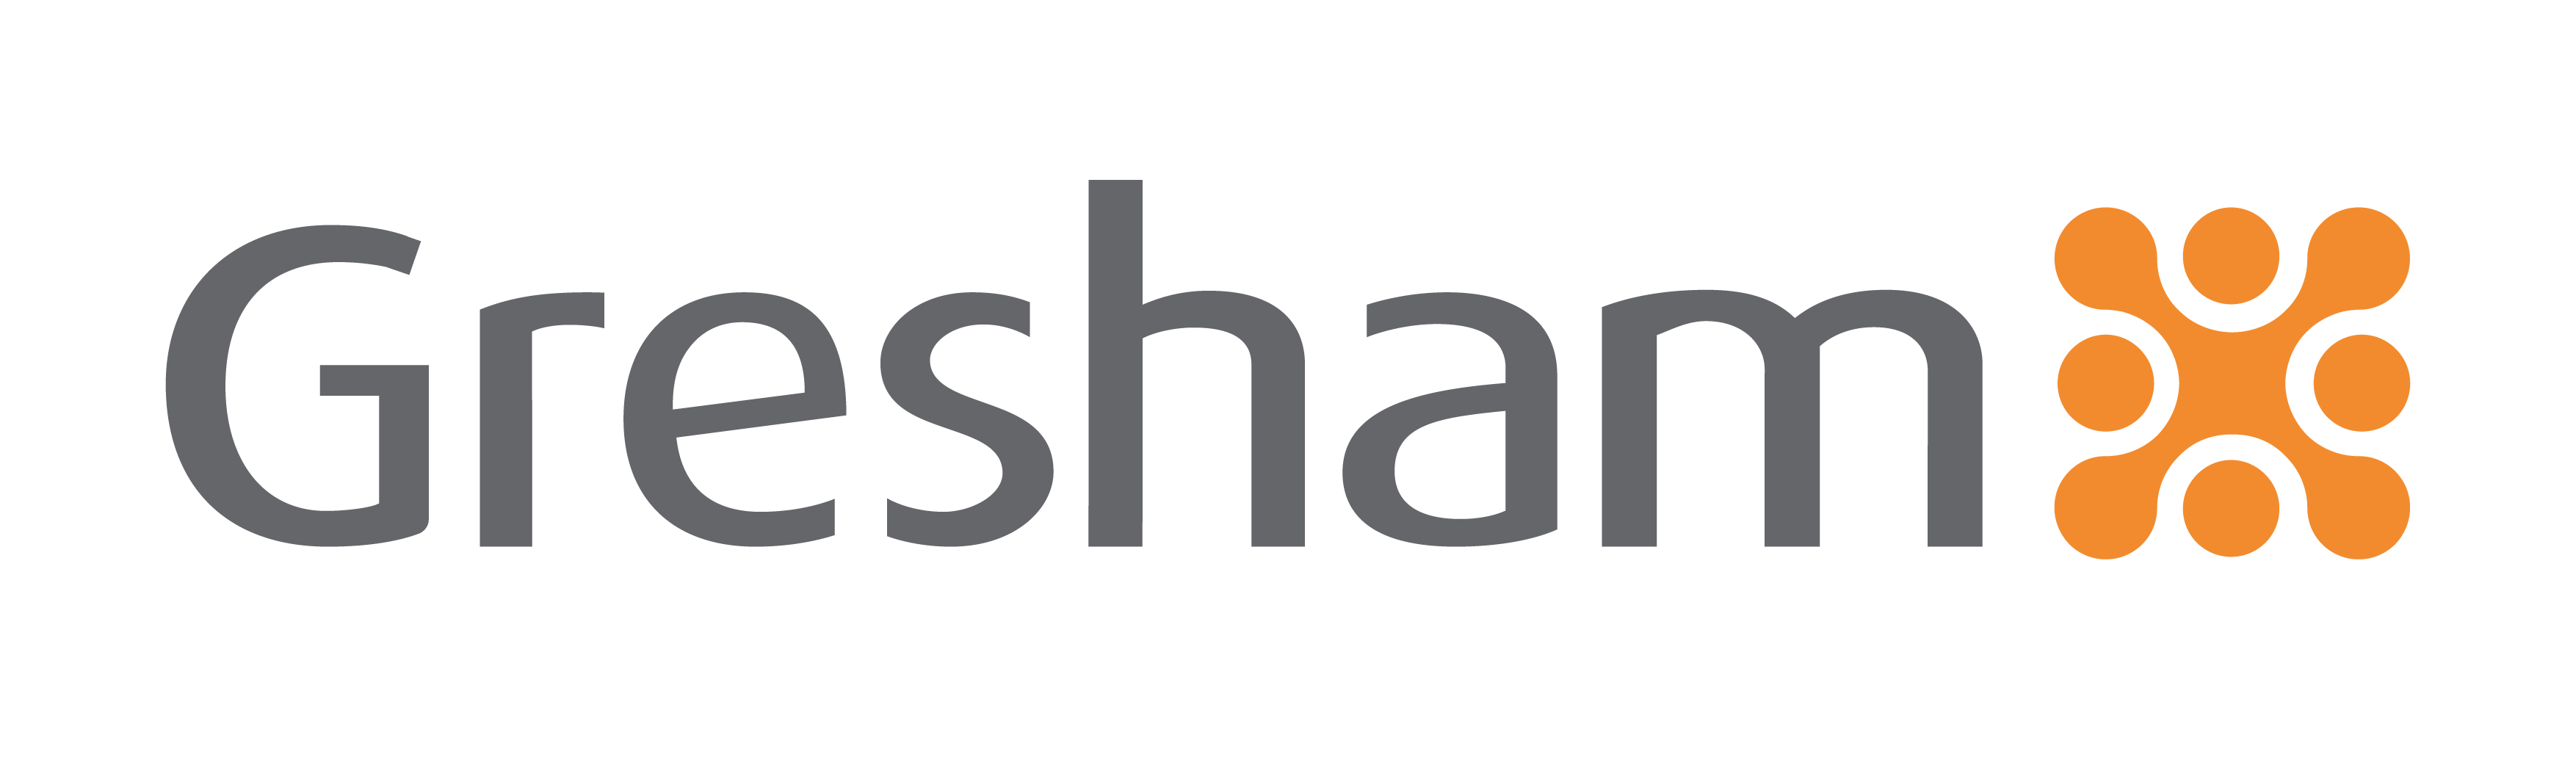 Gresham Launches Real-time Analytics Solution